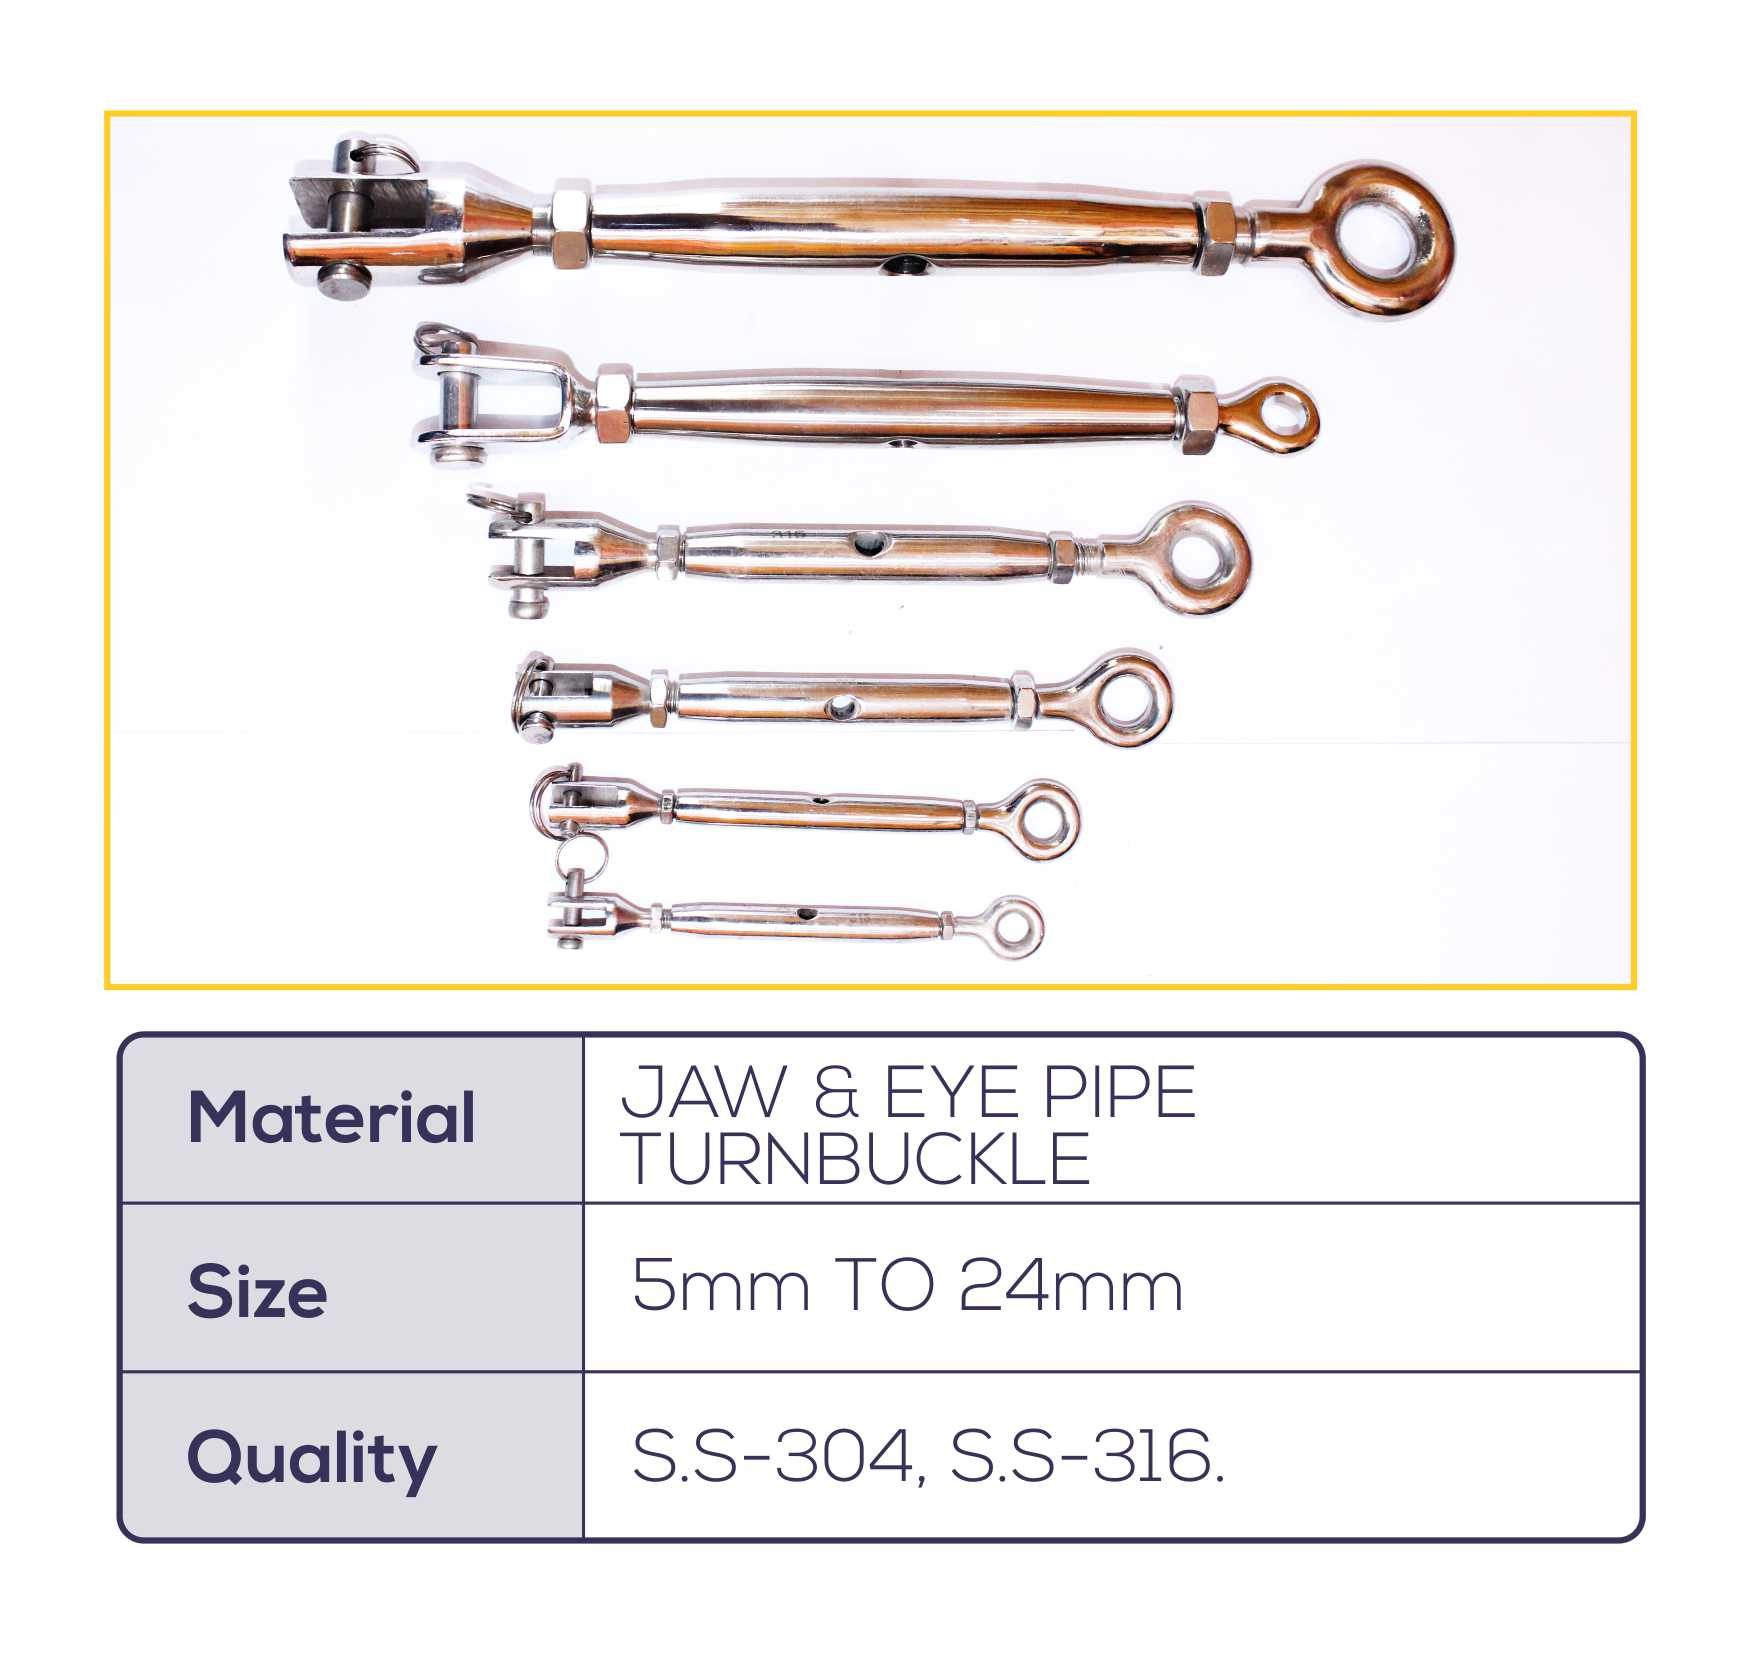 JAW & EYE PIPE TURNBUCKLE